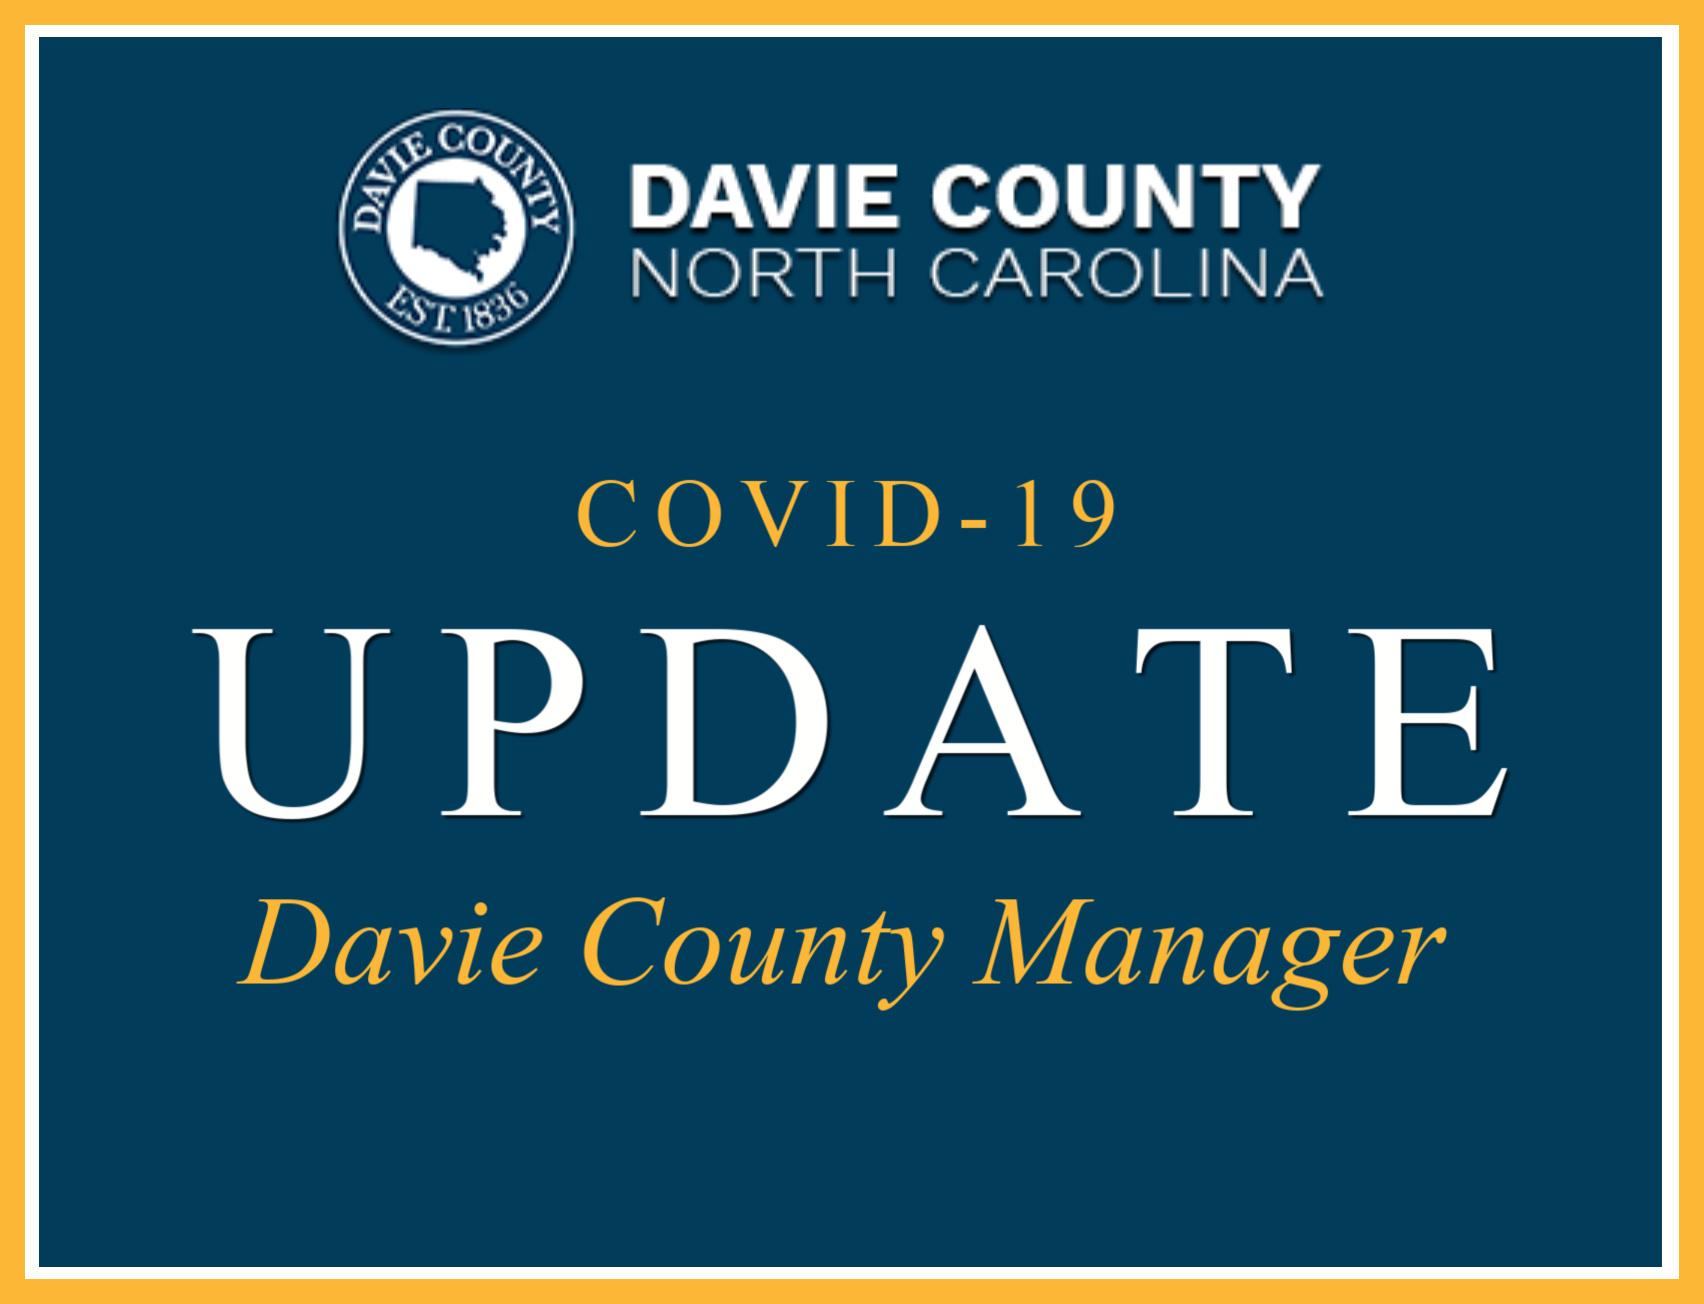 Davie County NC COVID-19 Updates and Resources with Links